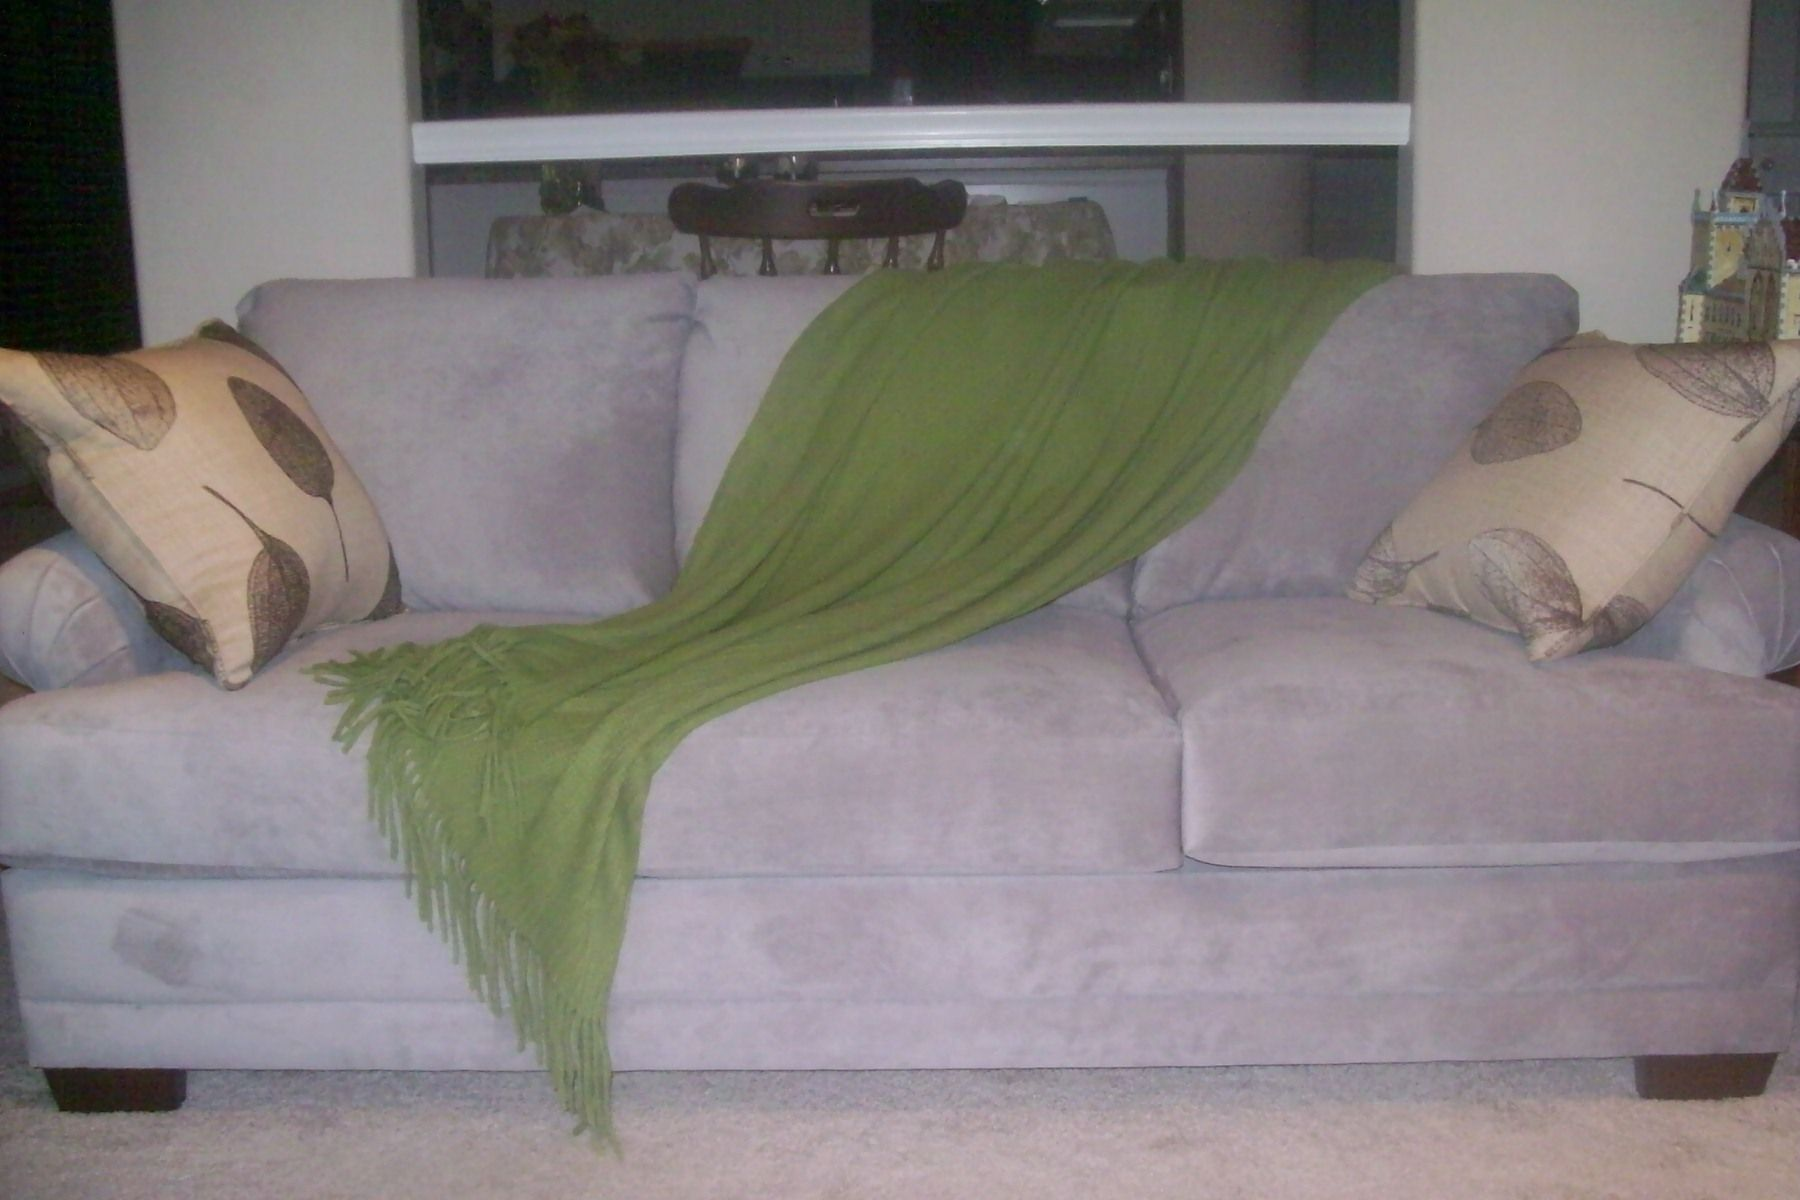 Our Brand New Couch With Lime Green Blanket, And Two